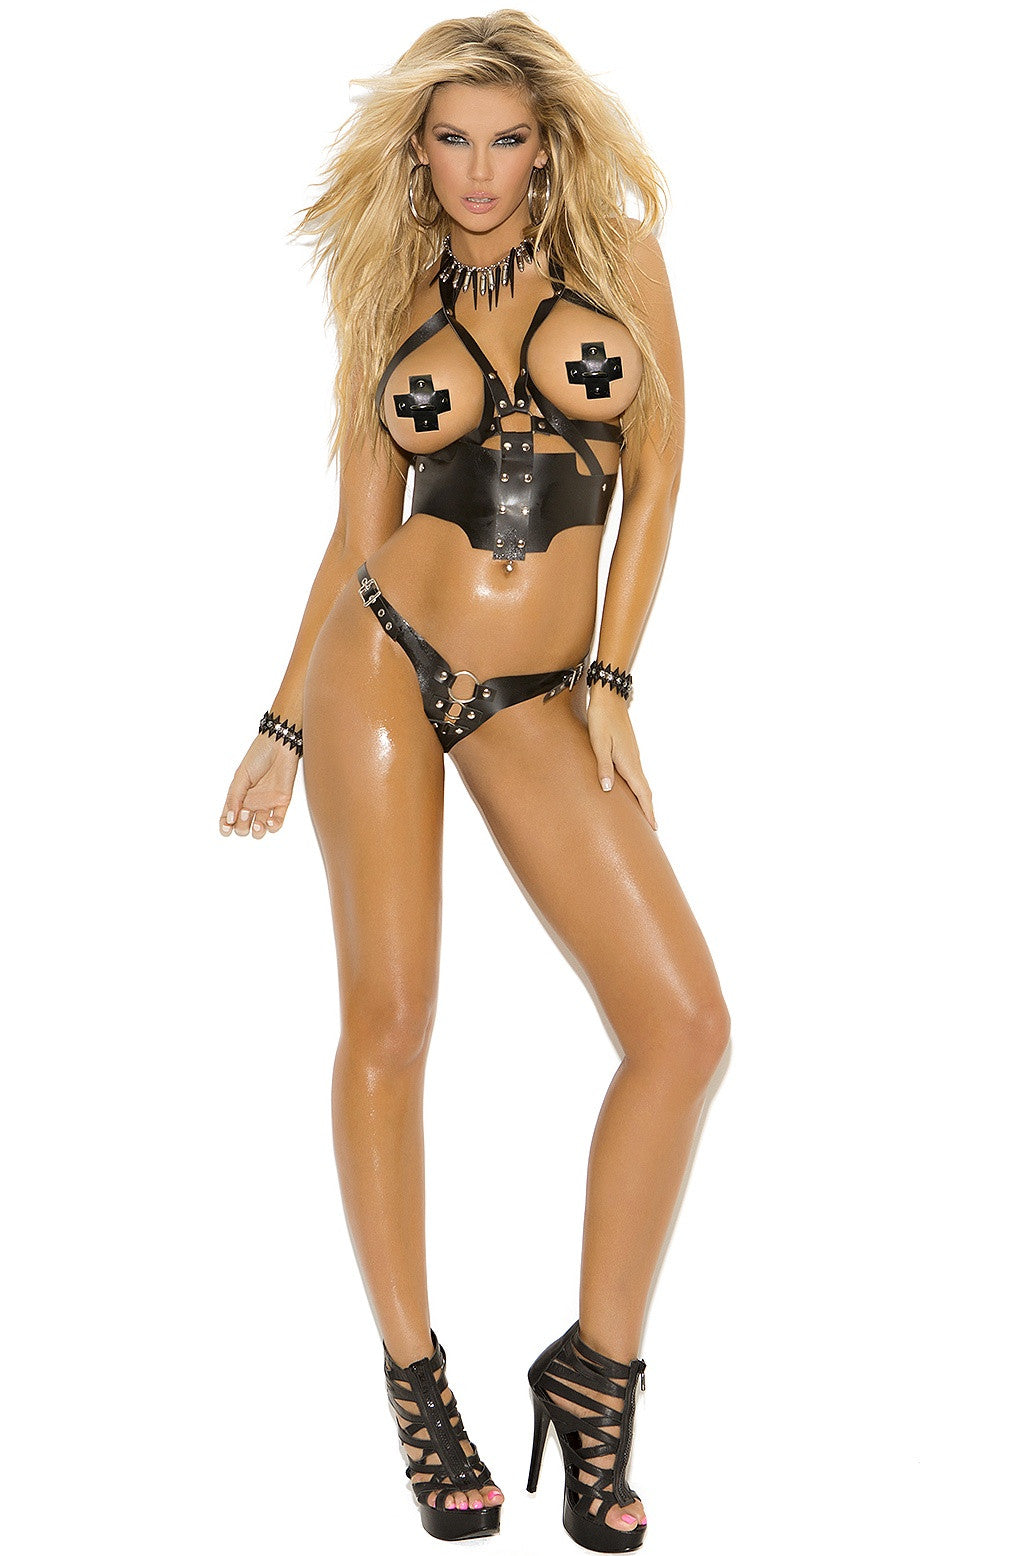 L9701 Black leather harness - Sexylingerieland  - 1